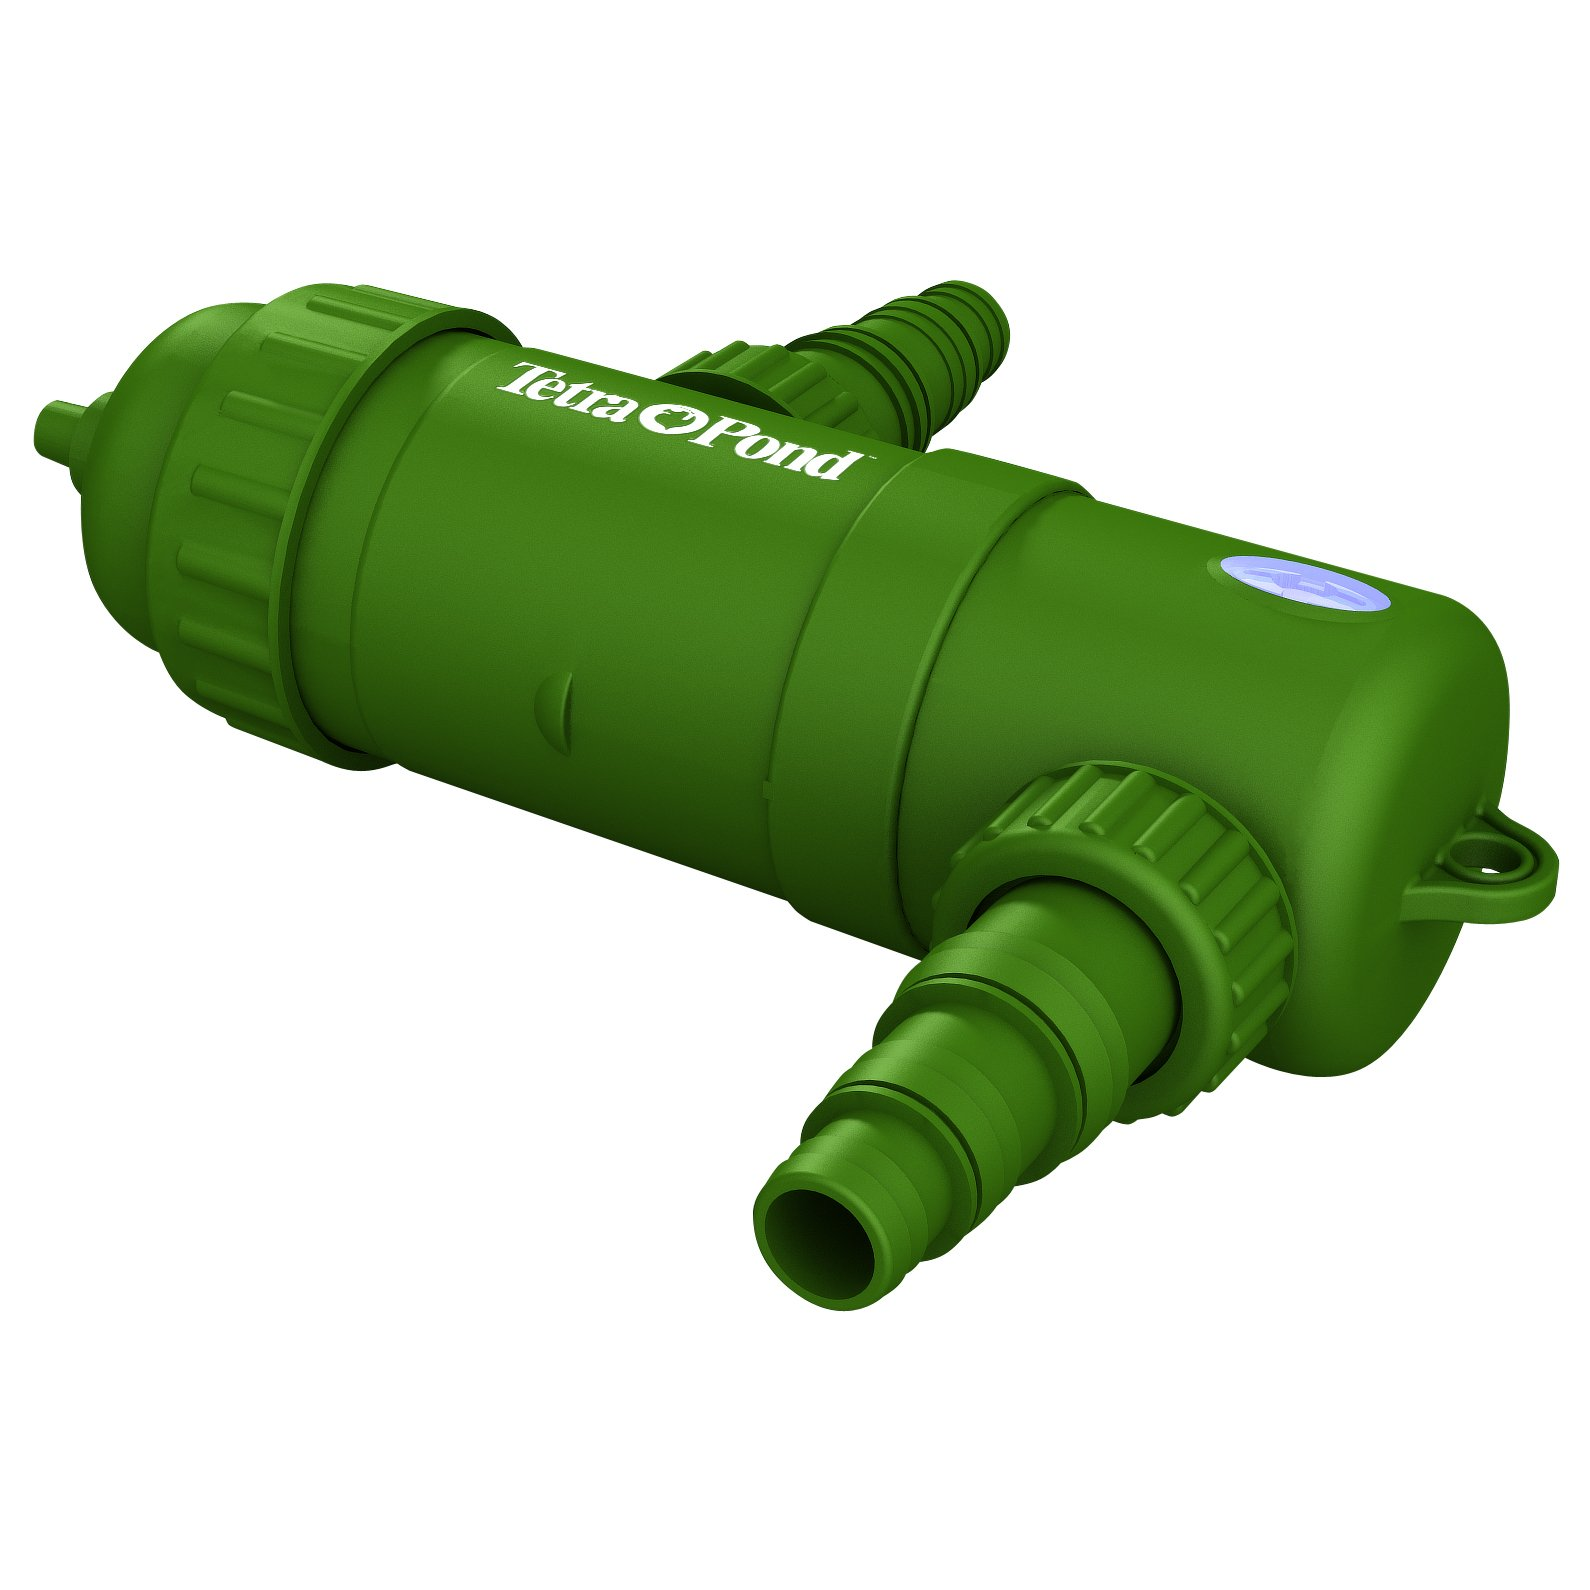 Tetra Pond UVC-5 GreenFree UV Clarifiers For Up To 660 Gallons, 5-Watt by Tetra Pond